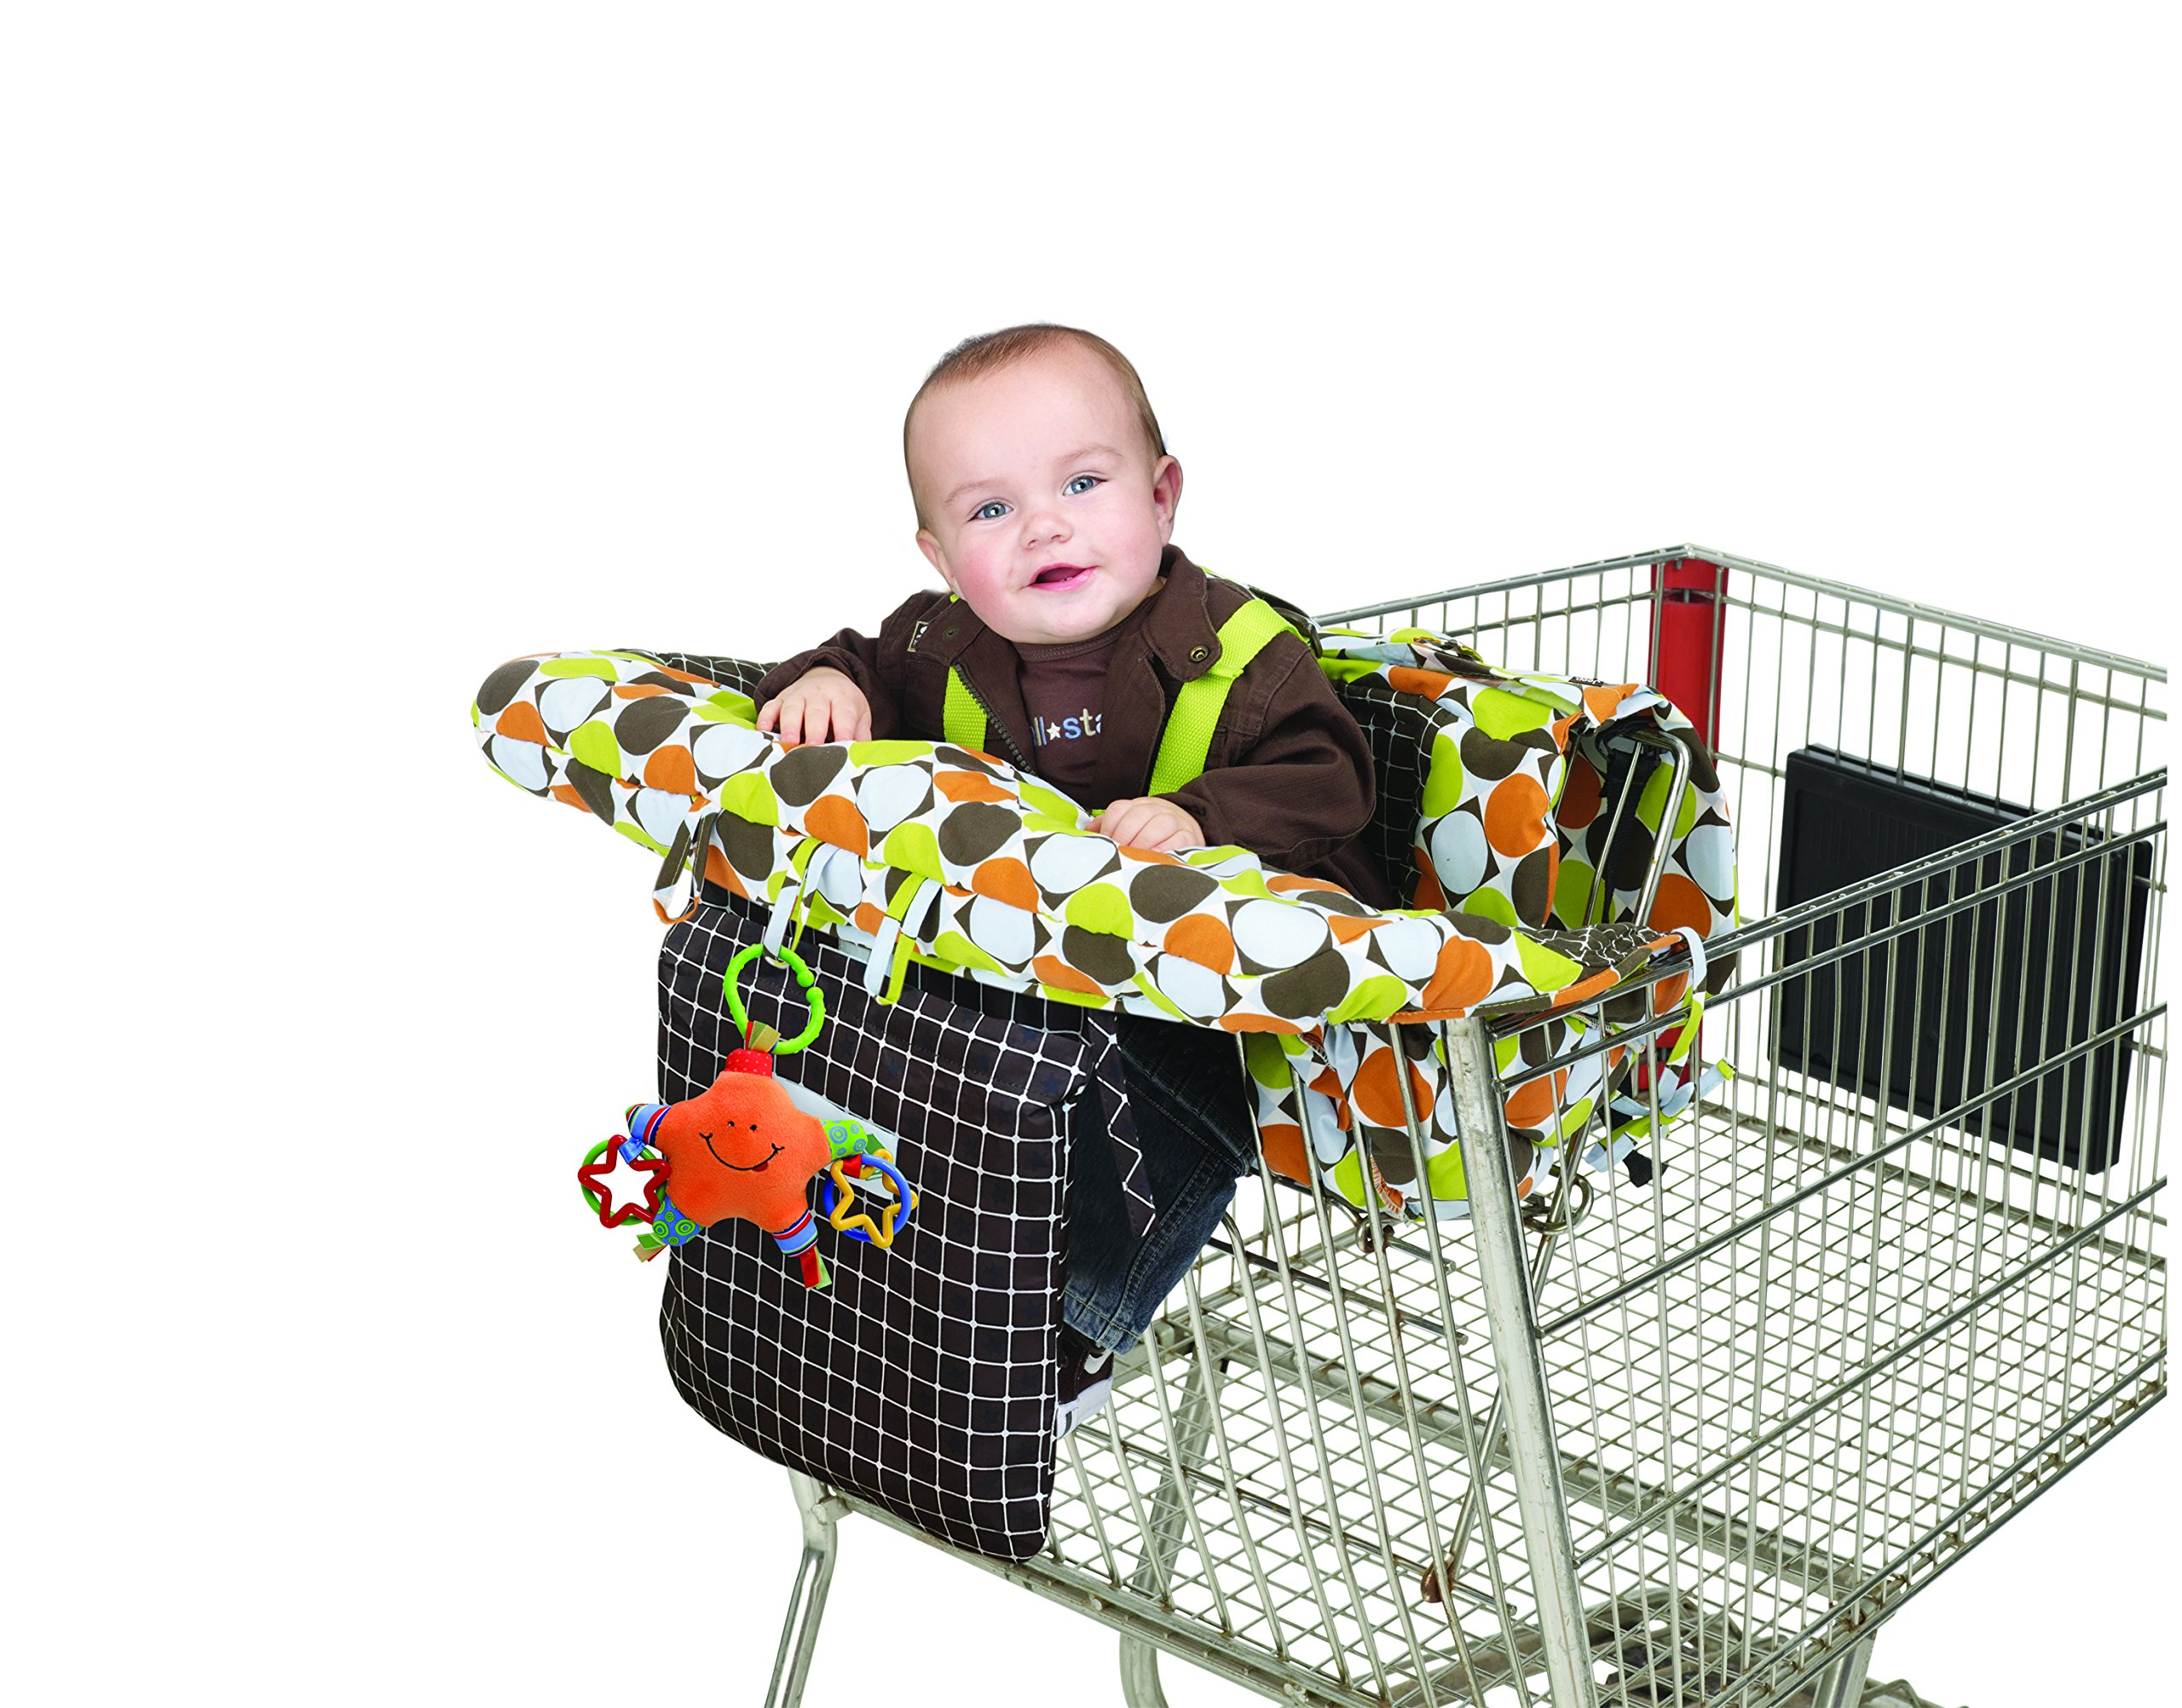 J is for Jeep 2-in-1 Shopping Cart Cover High Chair Cover, High Chair Cushion, Baby Grocery Cart Cover, Infant High Chair Cover, Safety Harness, Cart Cover, Toddler, Universal Size, Essentials Pocket